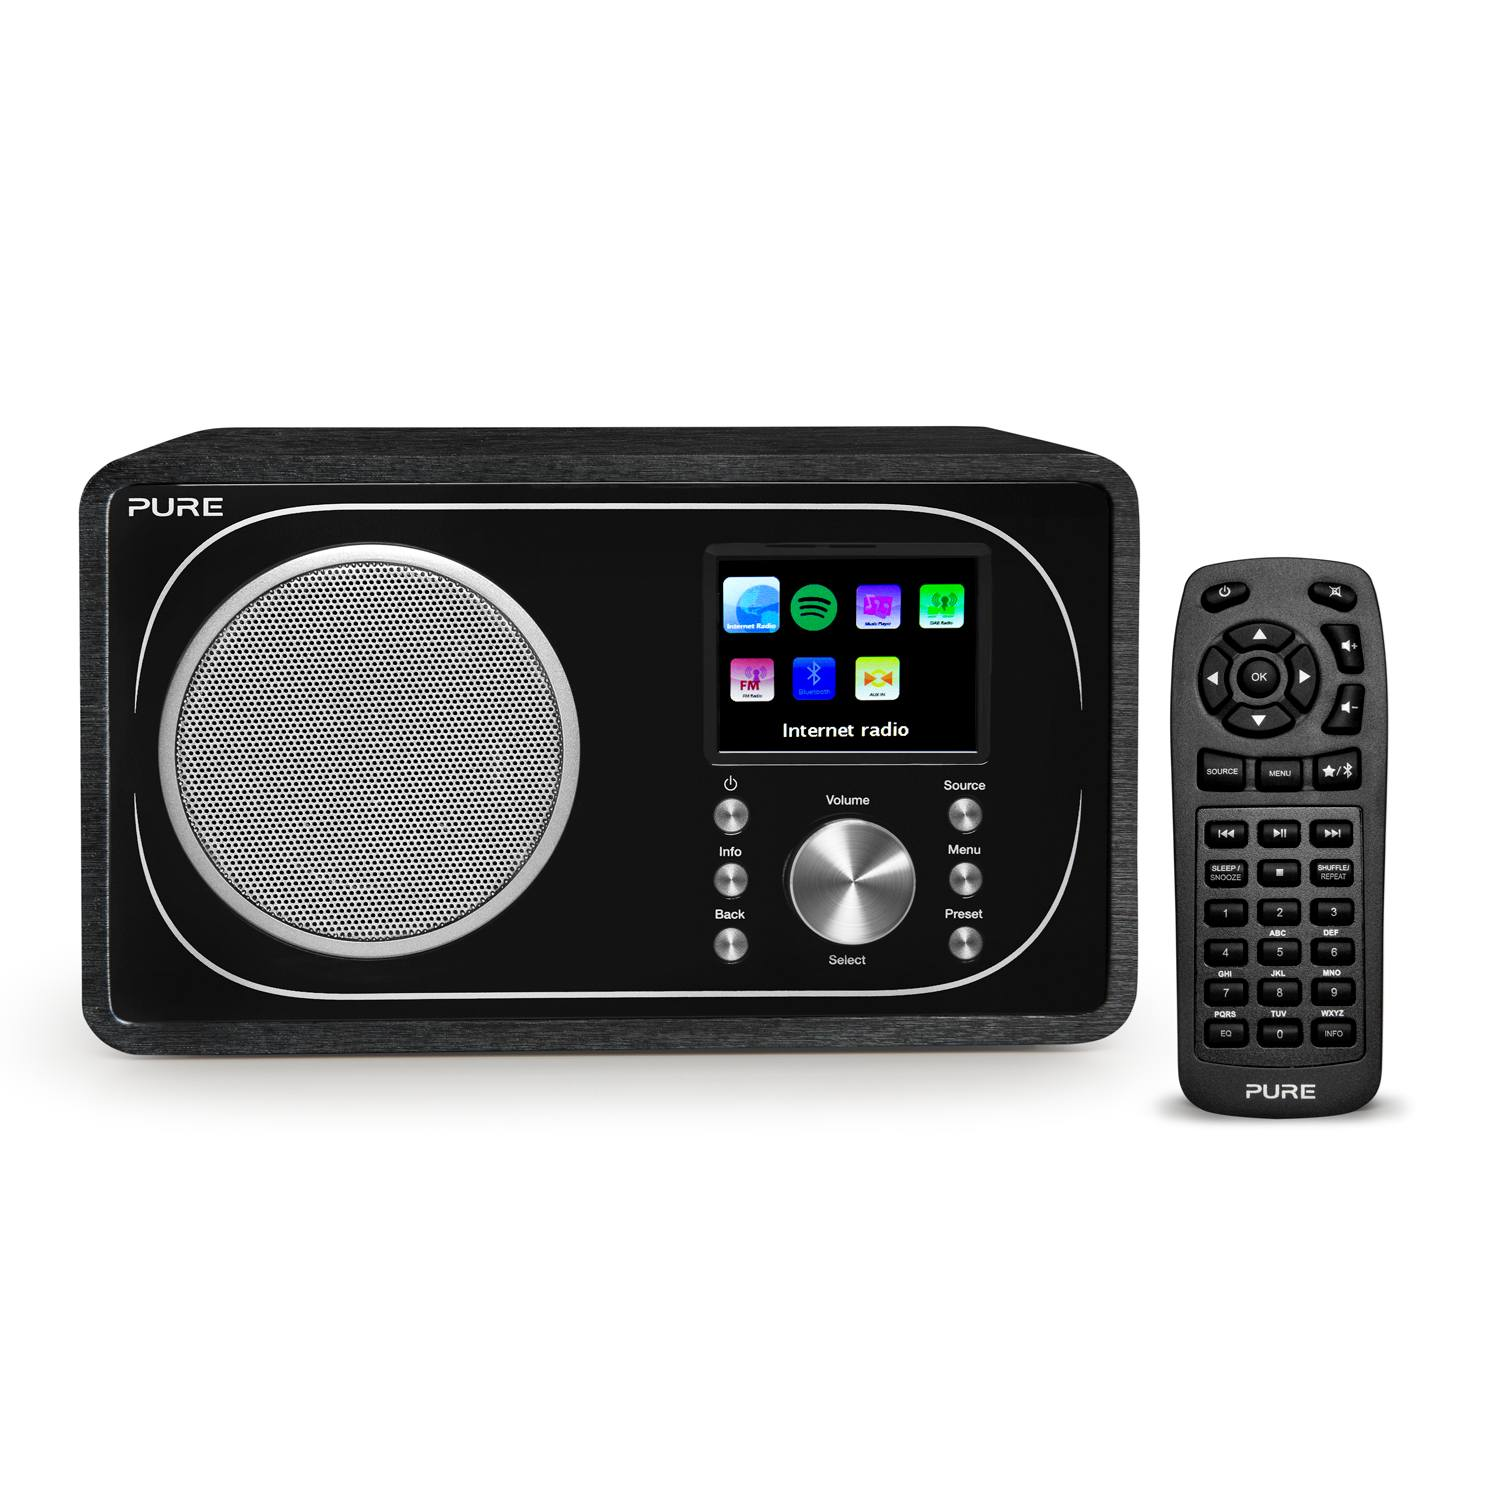 pure evoke f3 portable internet radio with bluetooth wifi. Black Bedroom Furniture Sets. Home Design Ideas